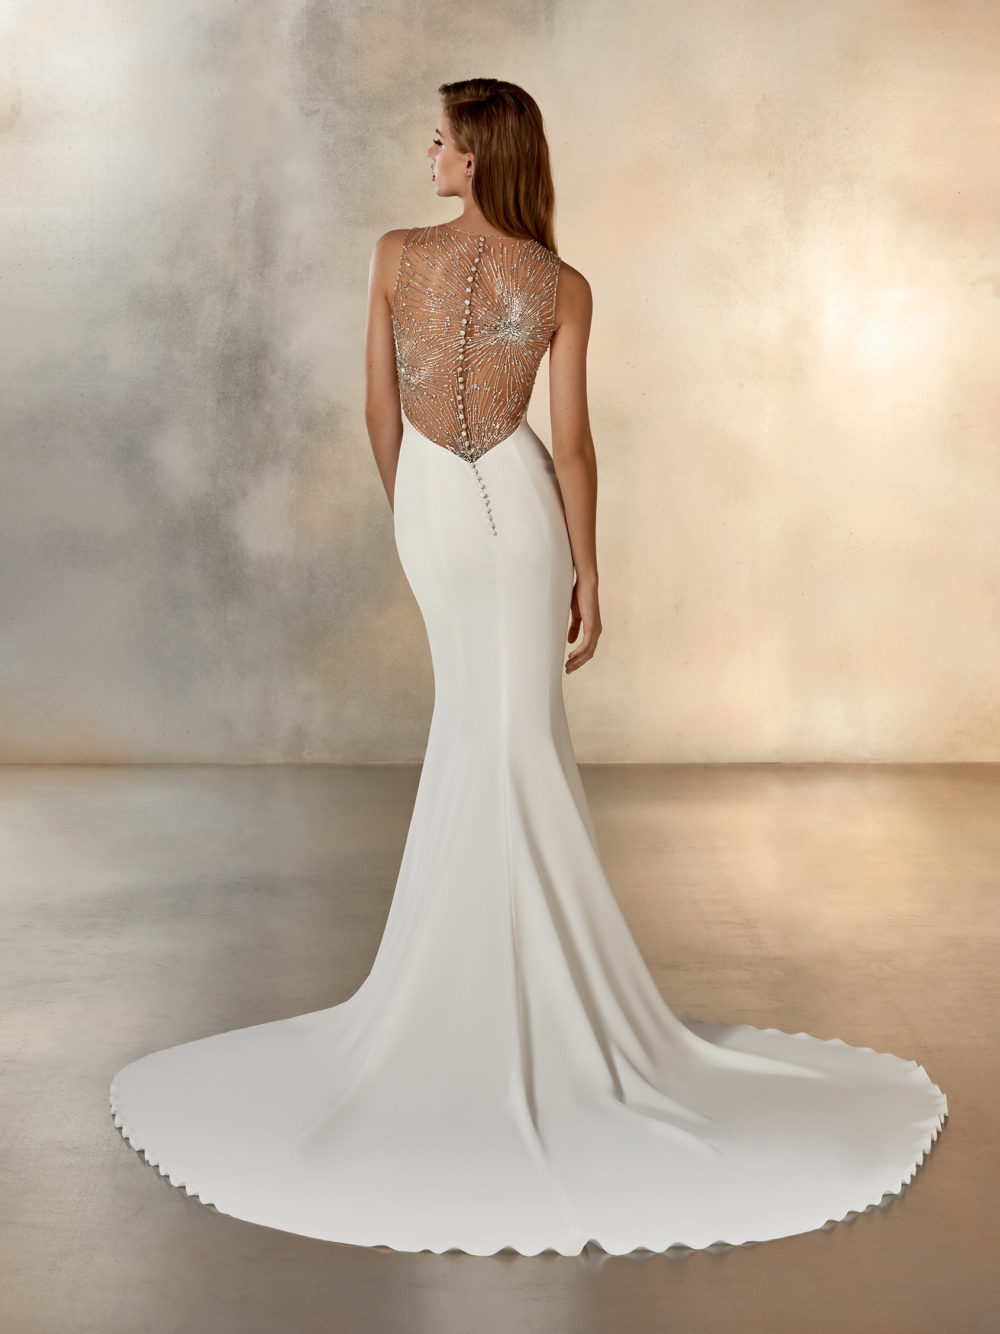 Pronovias Atelier Collection Galaxy Wedding Gown Dress 2020 back Detail 2